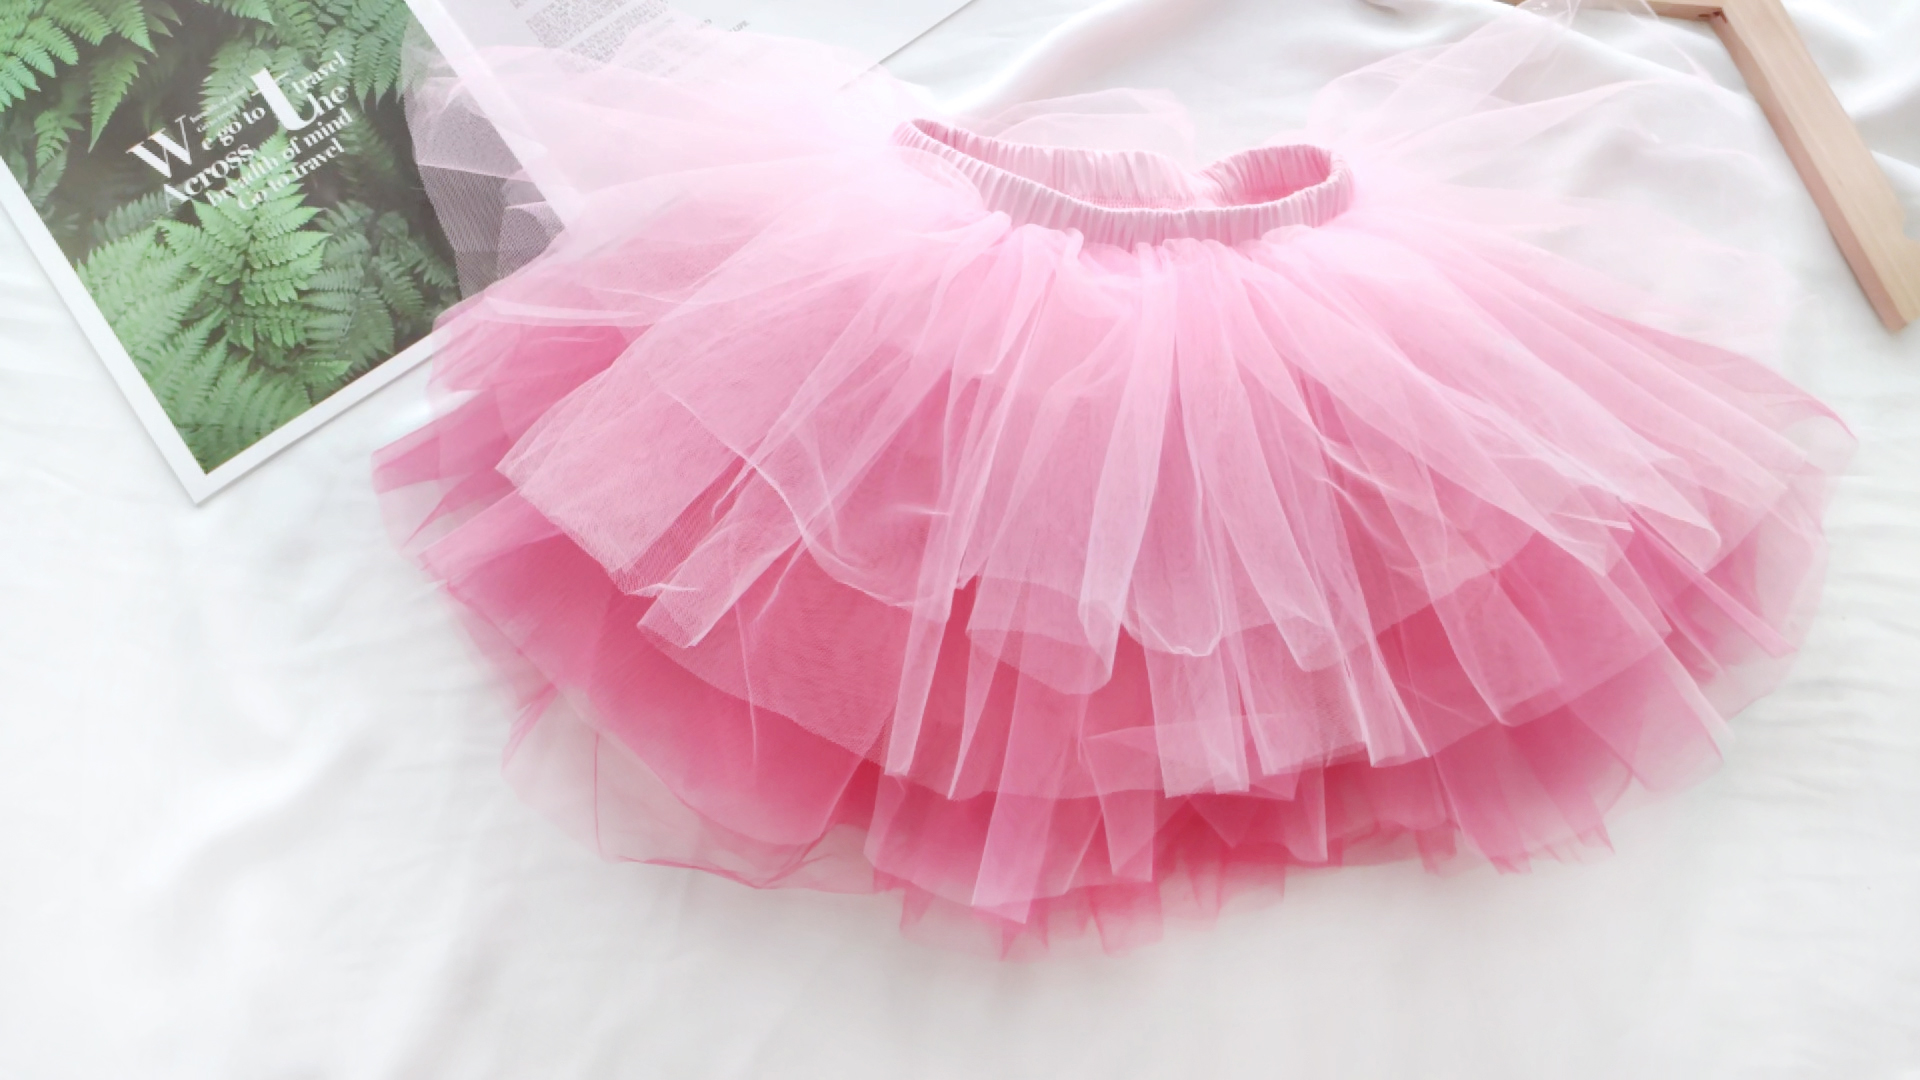 Wholesale Kids Ballet Skirt Assorted Size and Color Little Girl's Dance Pettiskirts Pink White Children Baby Tutu Skirt